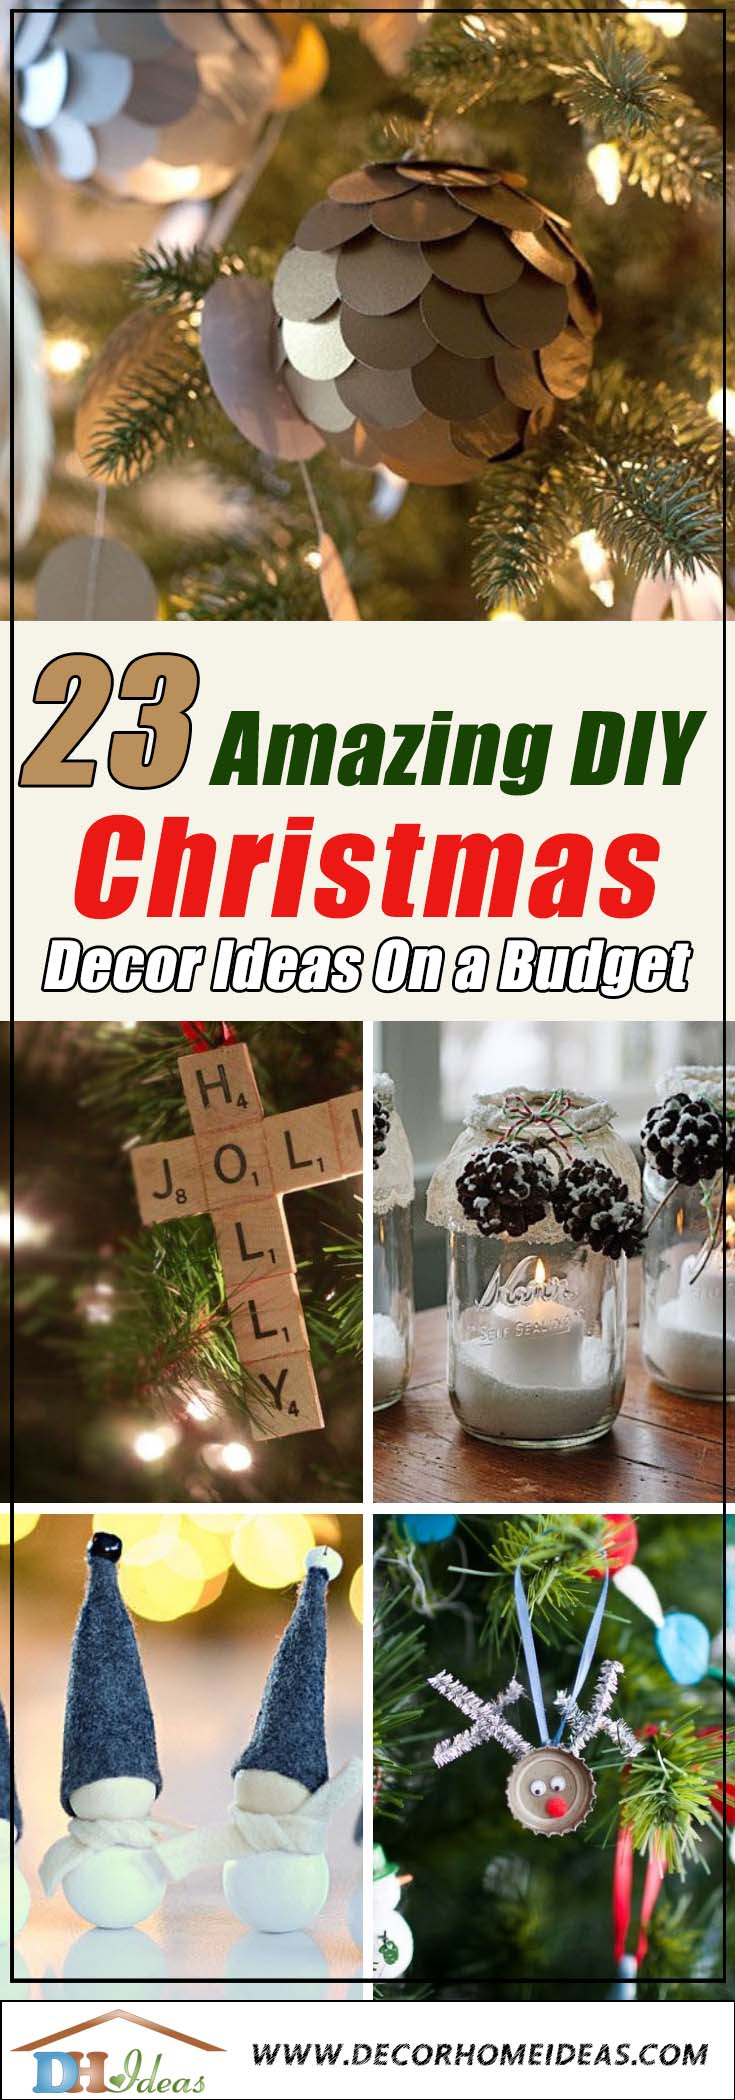 Christmas Decor On a Budget #Christmas #Christmasdecor #budget #diy #decorhomeideas